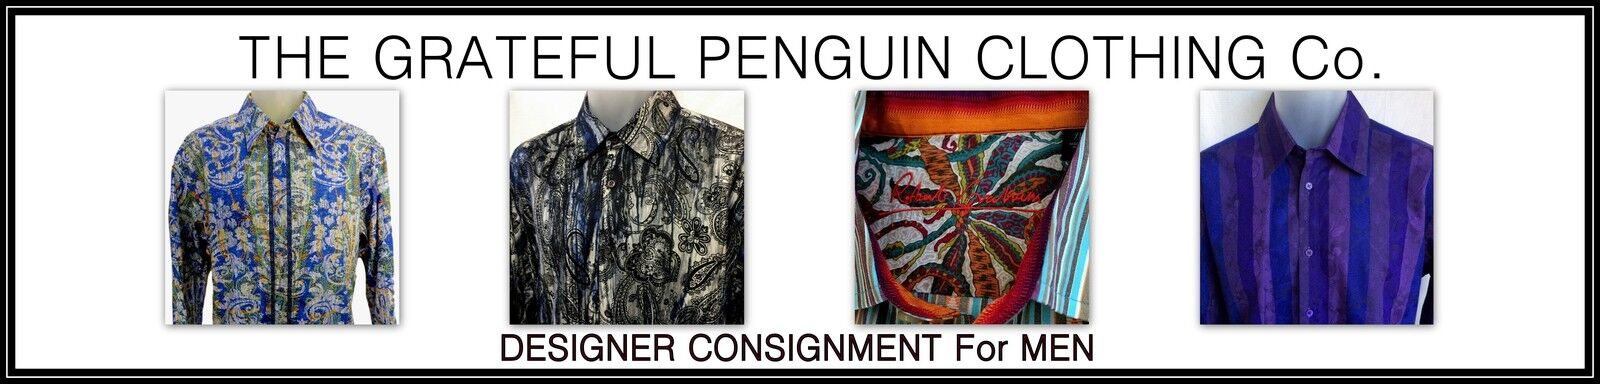 The Grateful Penguin Clothing Co